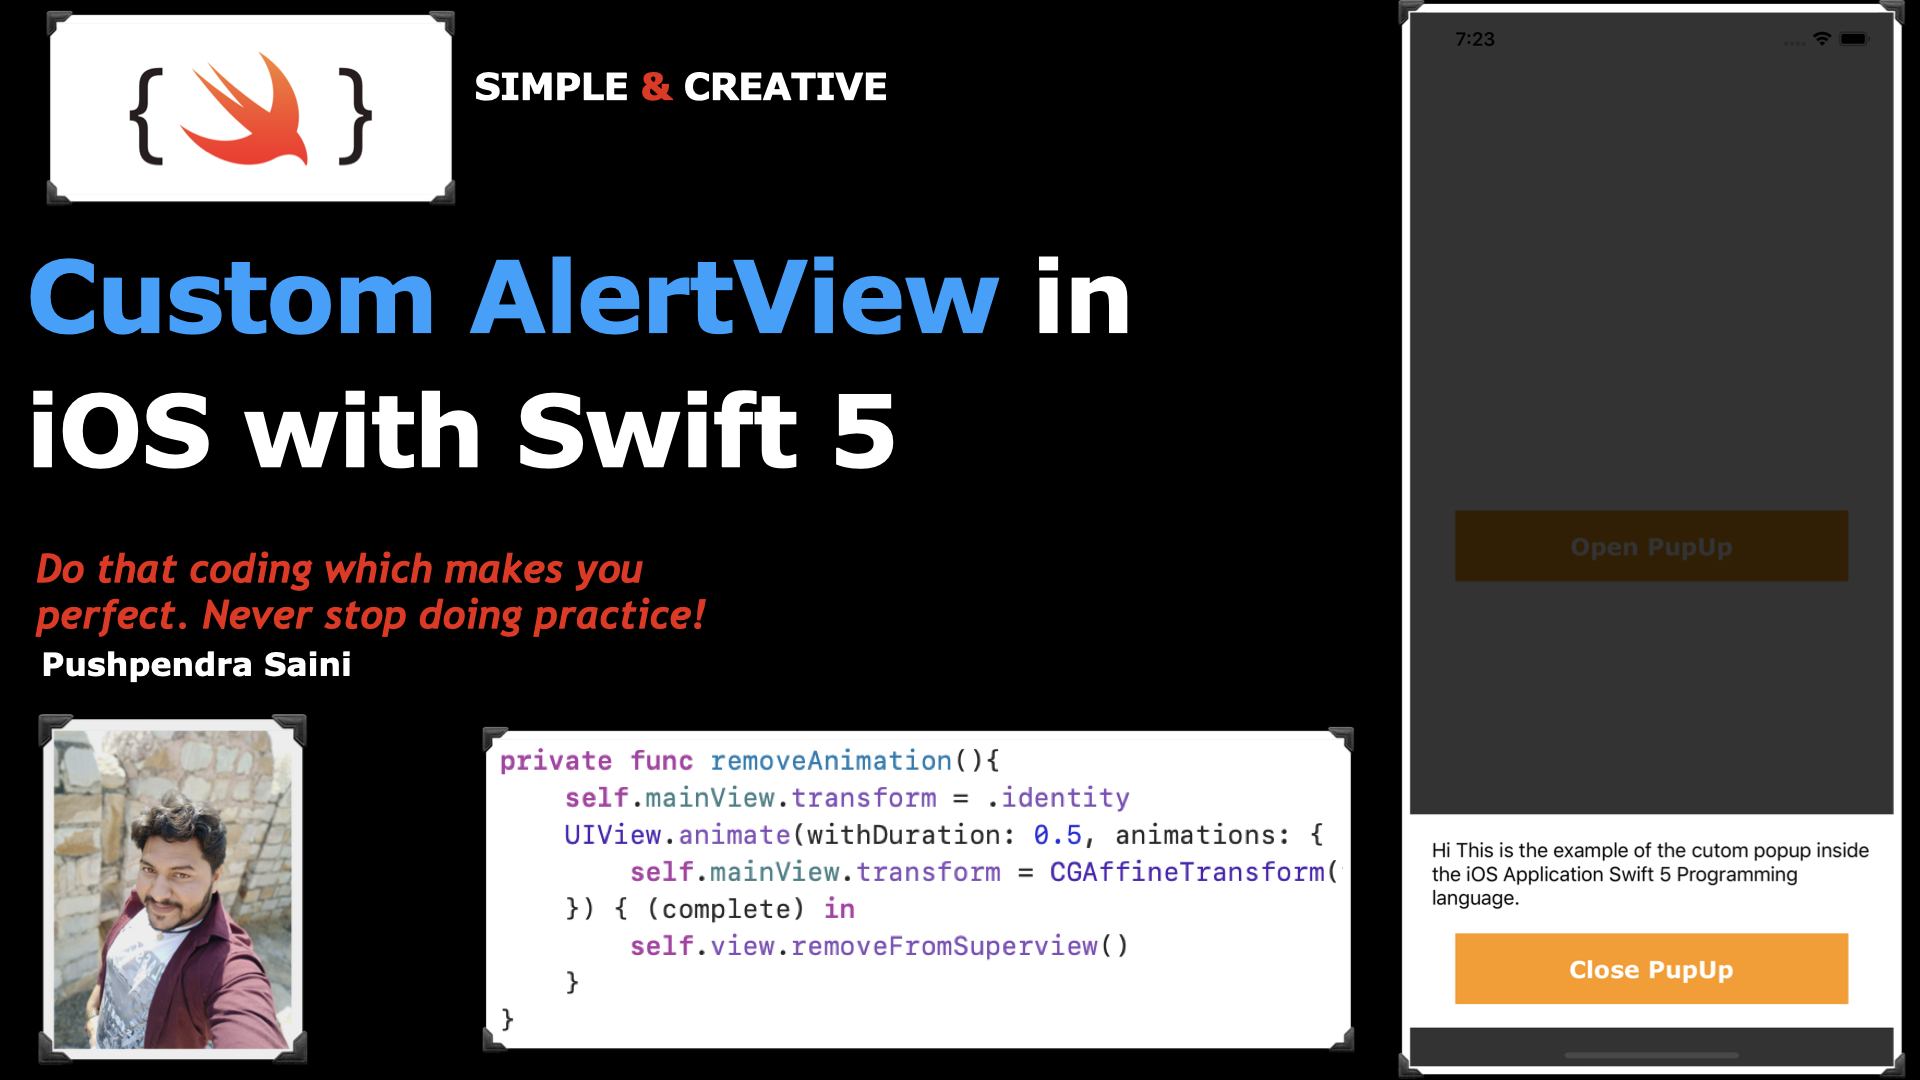 Custom AlertView in iOS with Swift 5